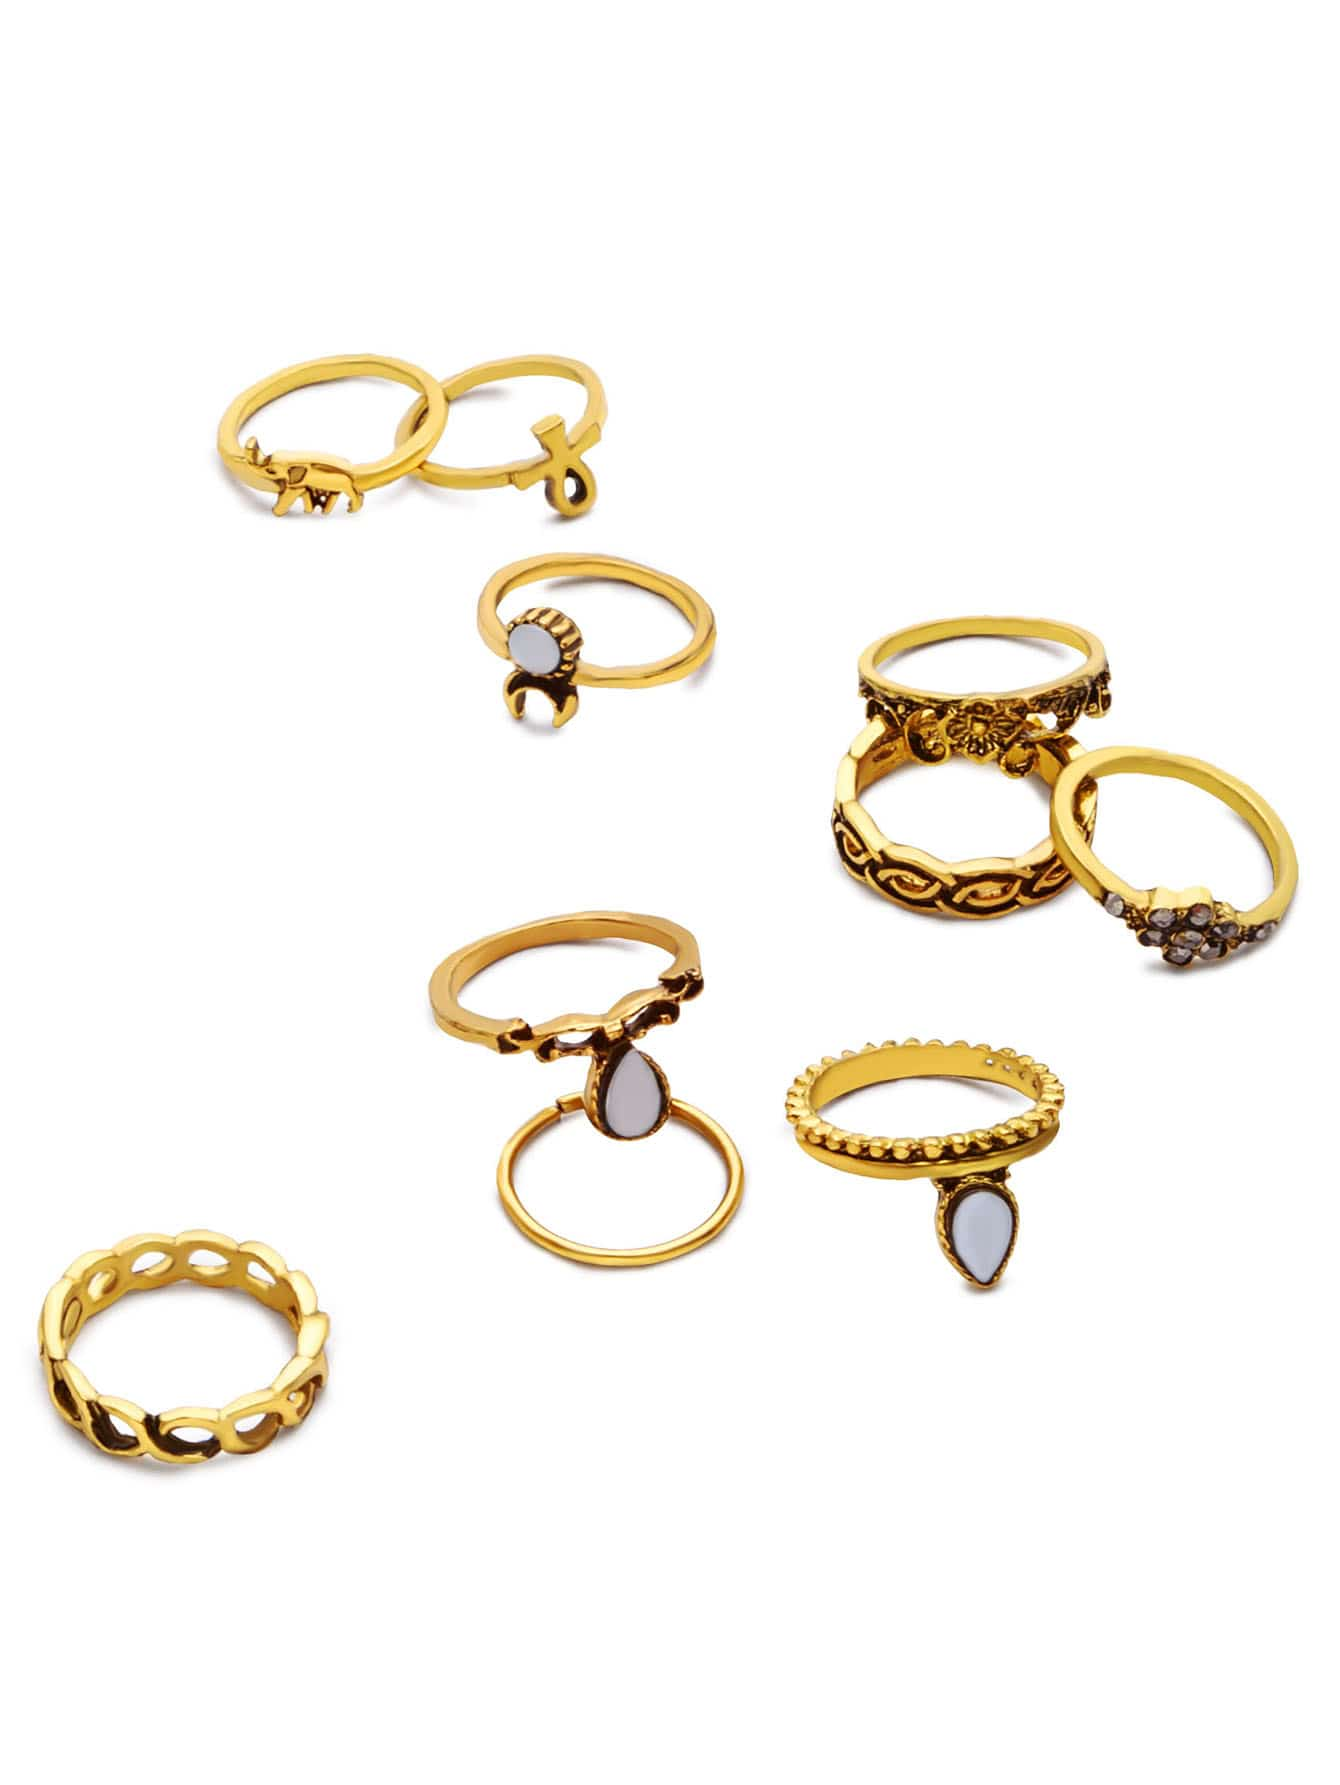 Image of 10PCS Antique Gold Geometric Carved Ring Set